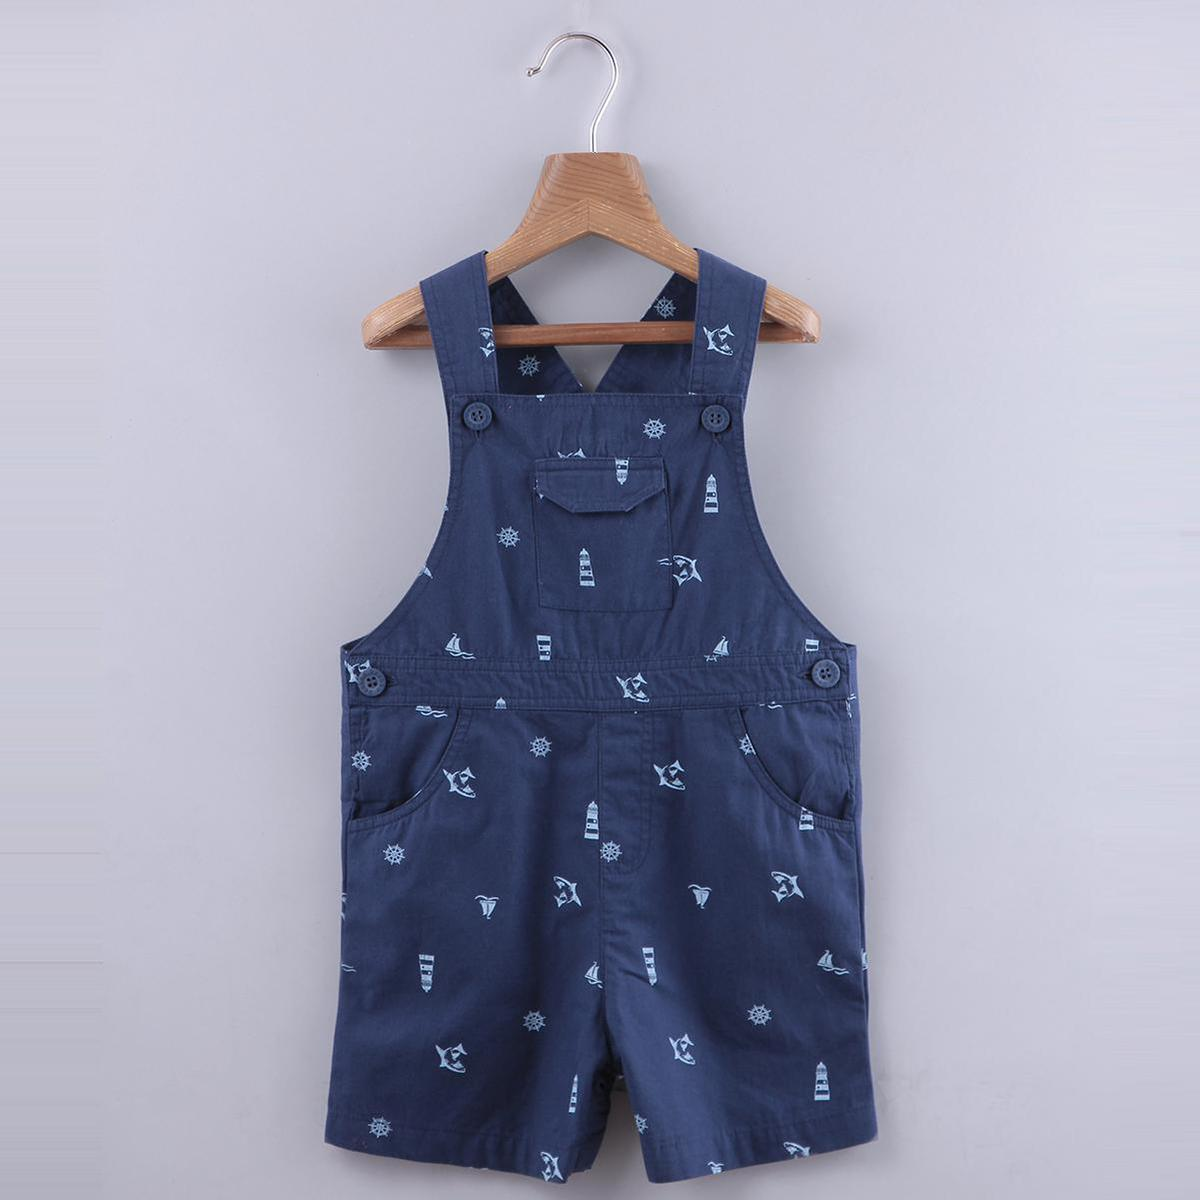 Beebay - Navy Colored Shark Print Cotton Dungree For Boys